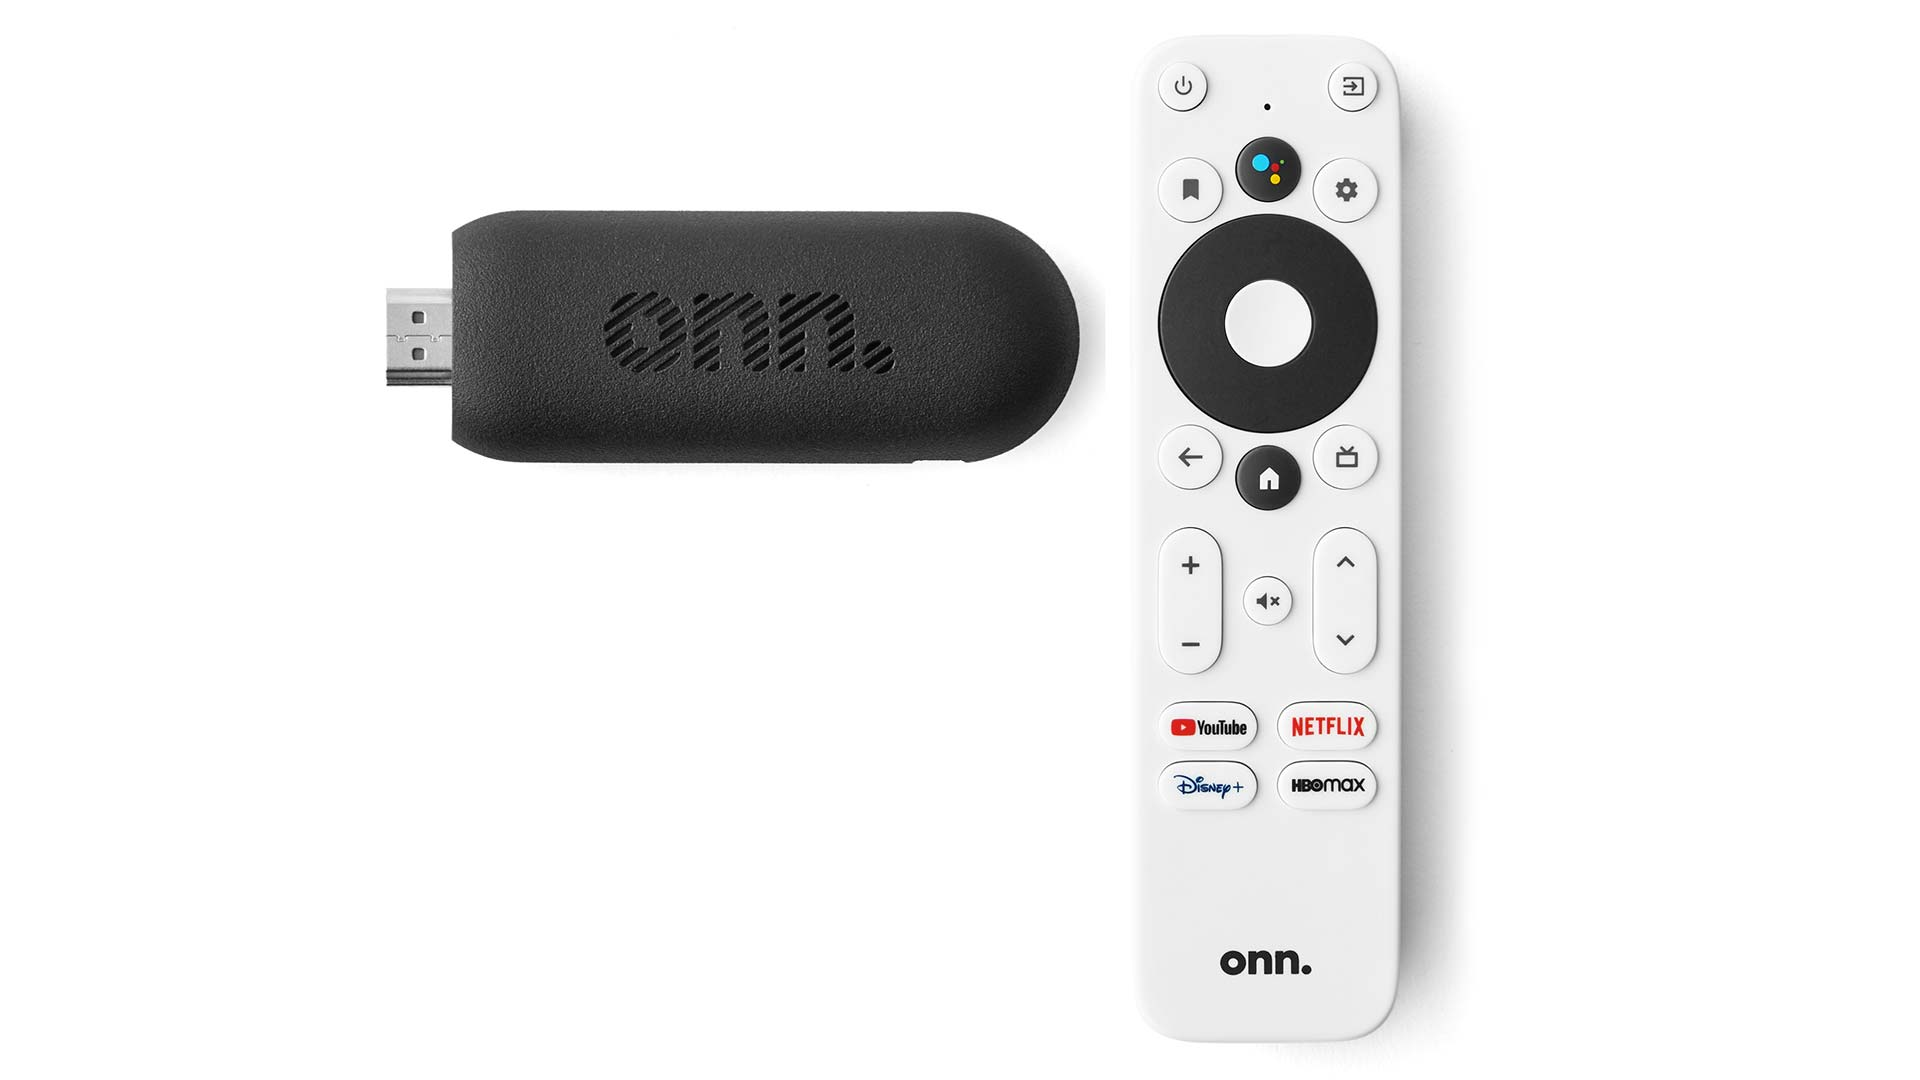 Walmart's Onn 1080p Android TV Streaming Stick appears on website for $24.88